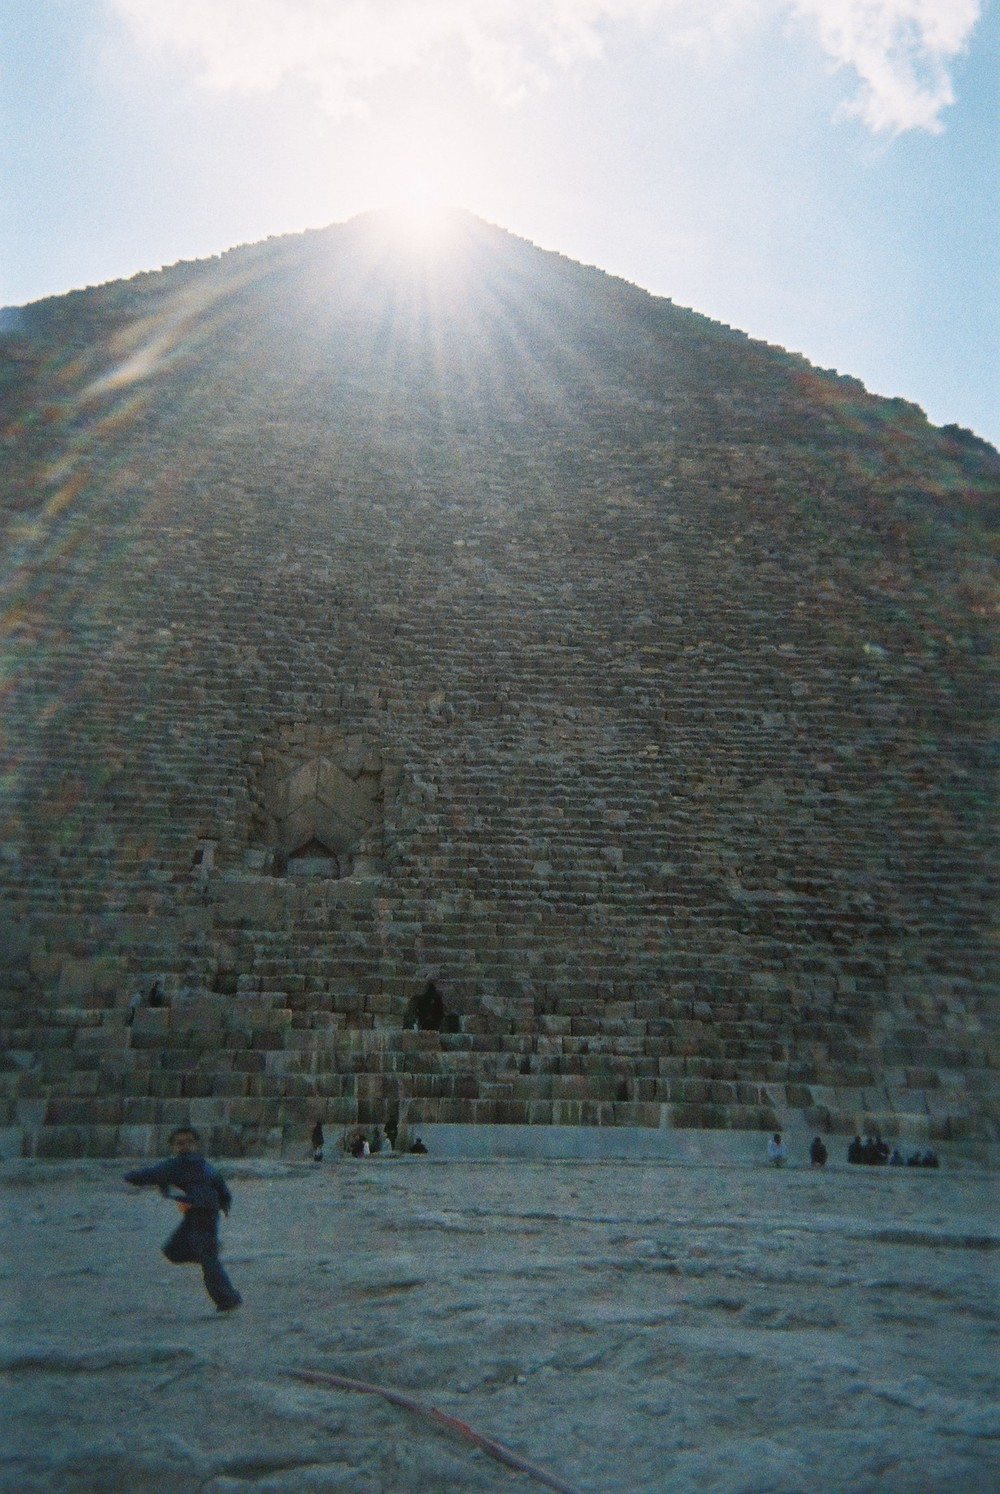 Figure 2.3. Sun at noon sighted at the top of the Great Pyramid at Giza.